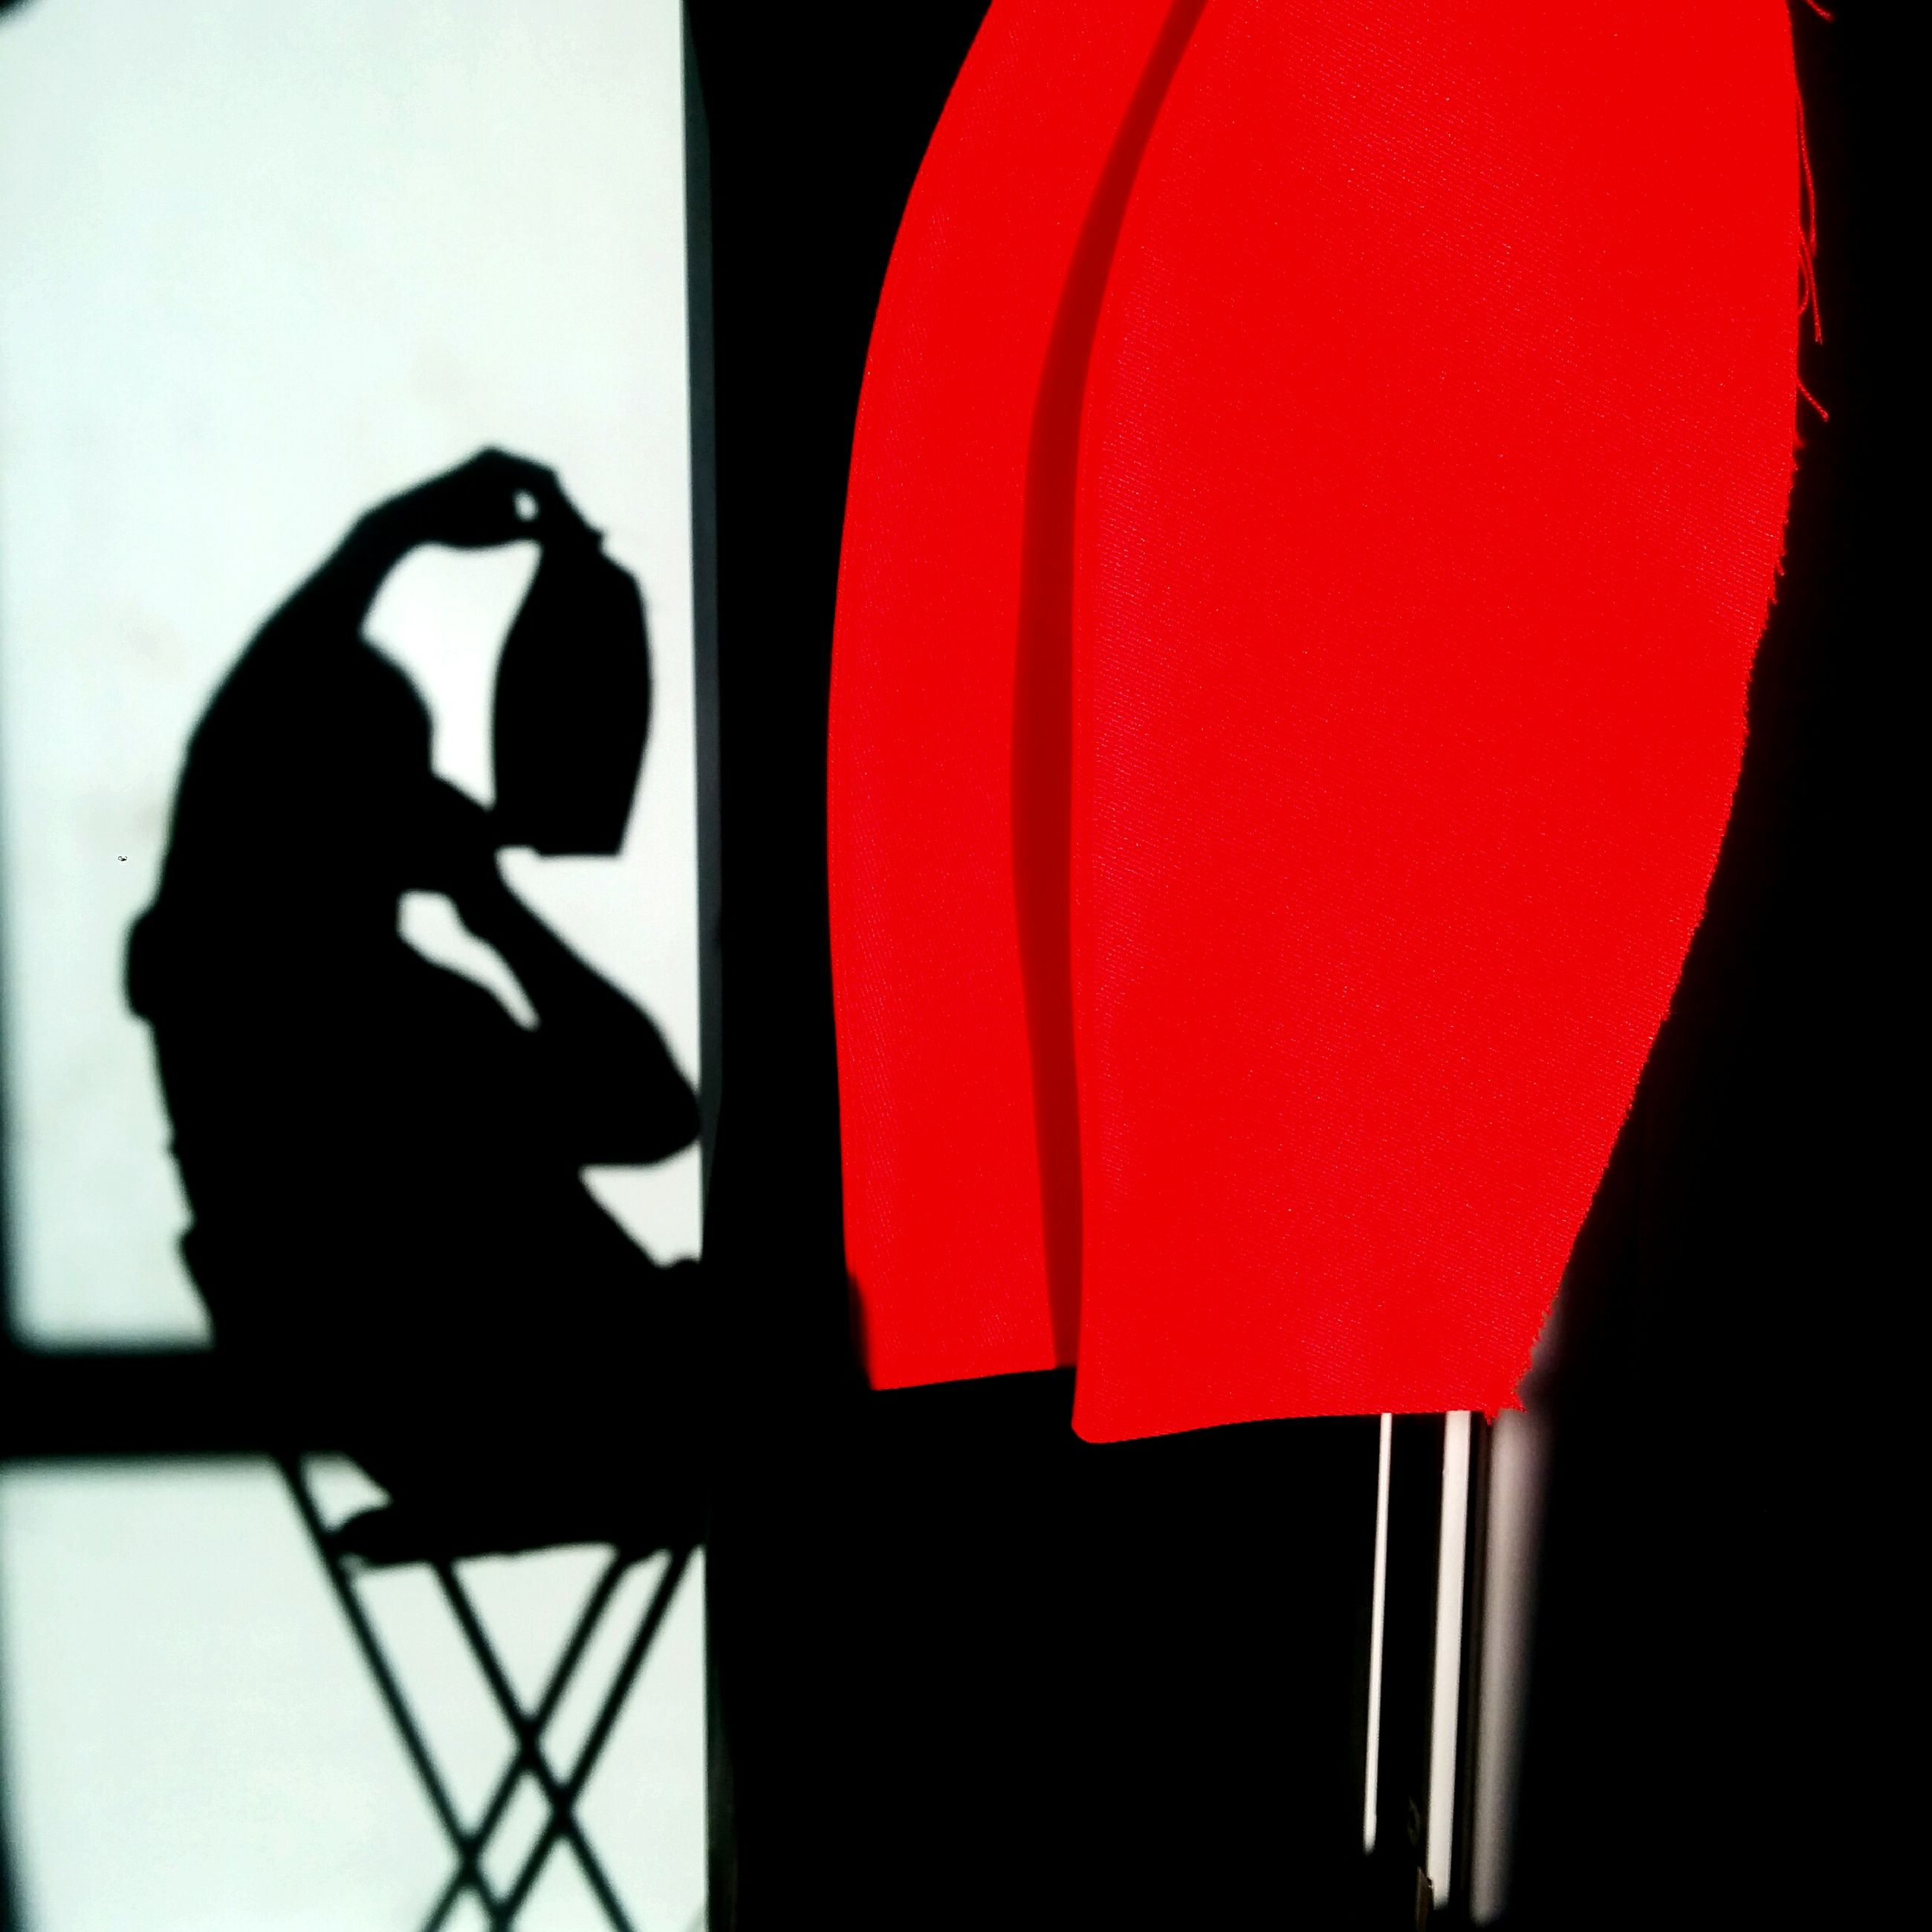 indoors, red, lifestyles, close-up, standing, person, men, unrecognizable person, part of, holding, shadow, window, leisure activity, home interior, wall - building feature, day